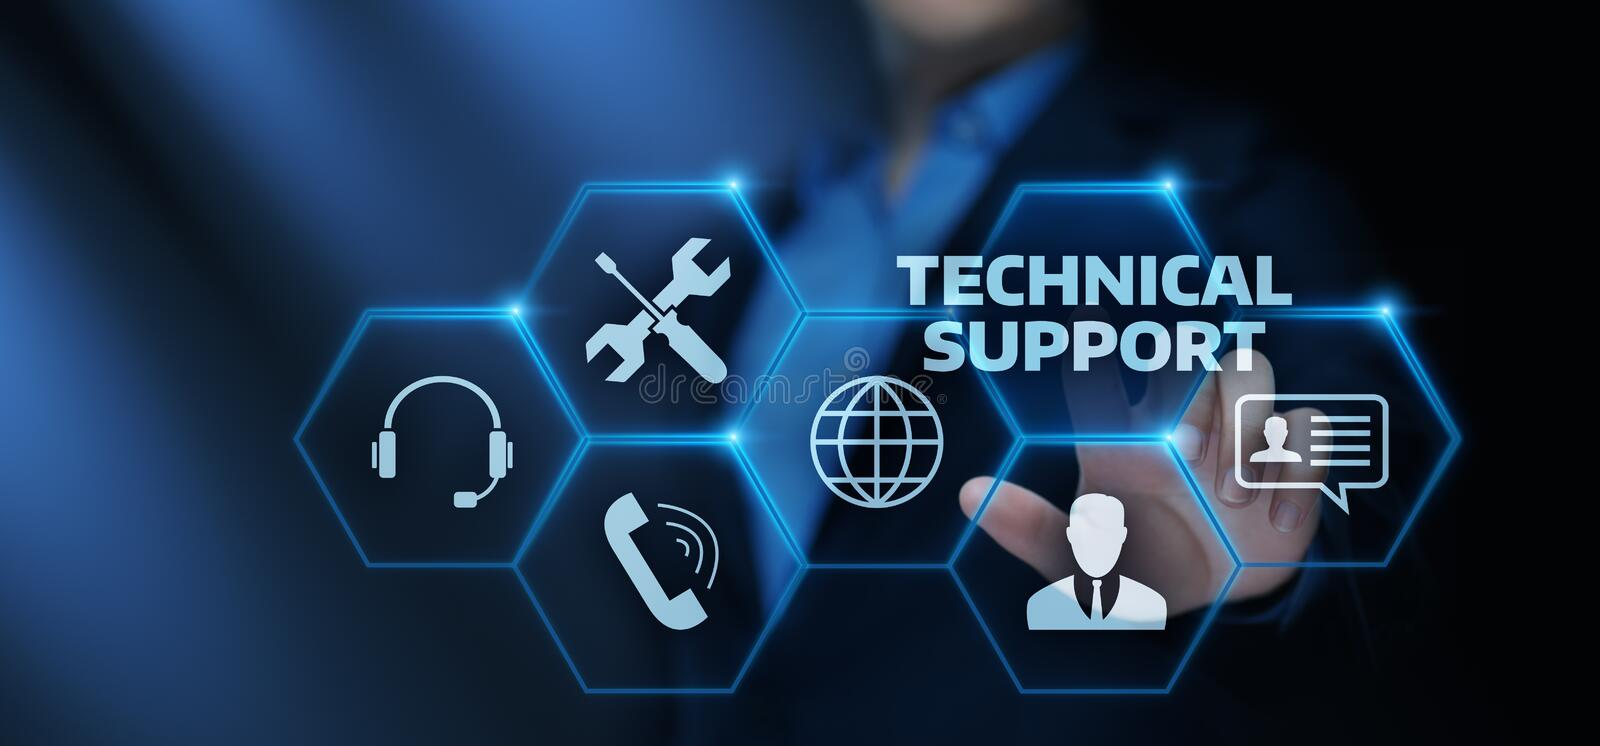 Technical Support Customer Service Business Technology Internet Concept stock illustration